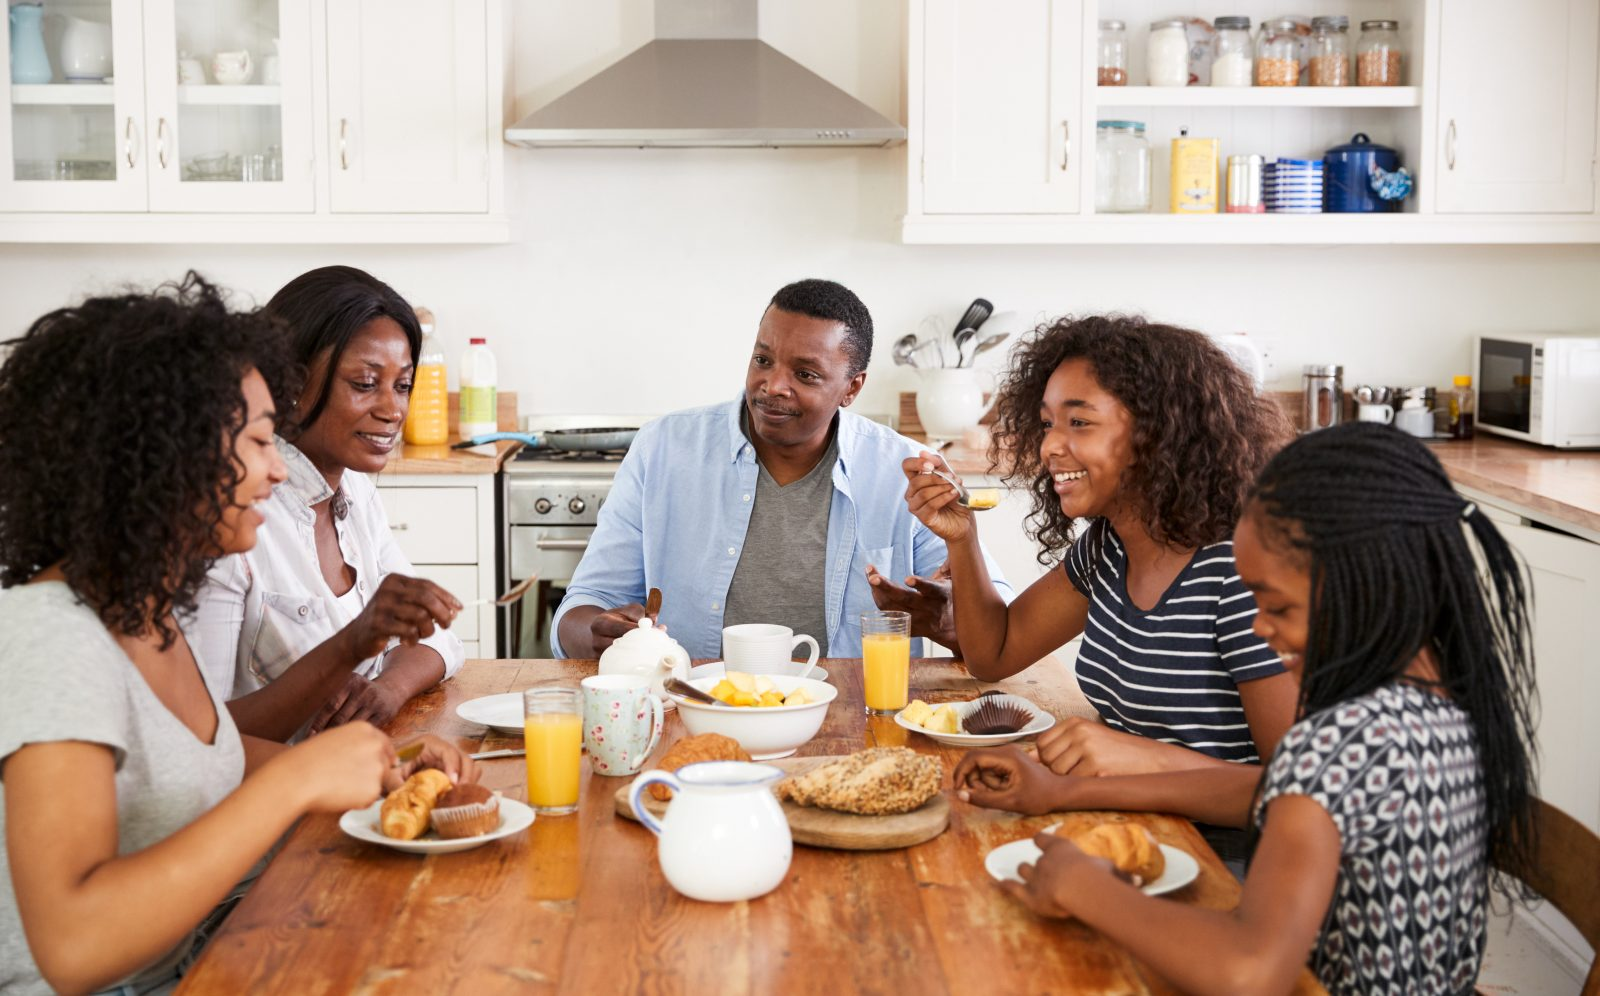 Family With Teenage Children Eating Breakfast In Kitchen / Photo Credit: Monkey Business Images, Shutterstock